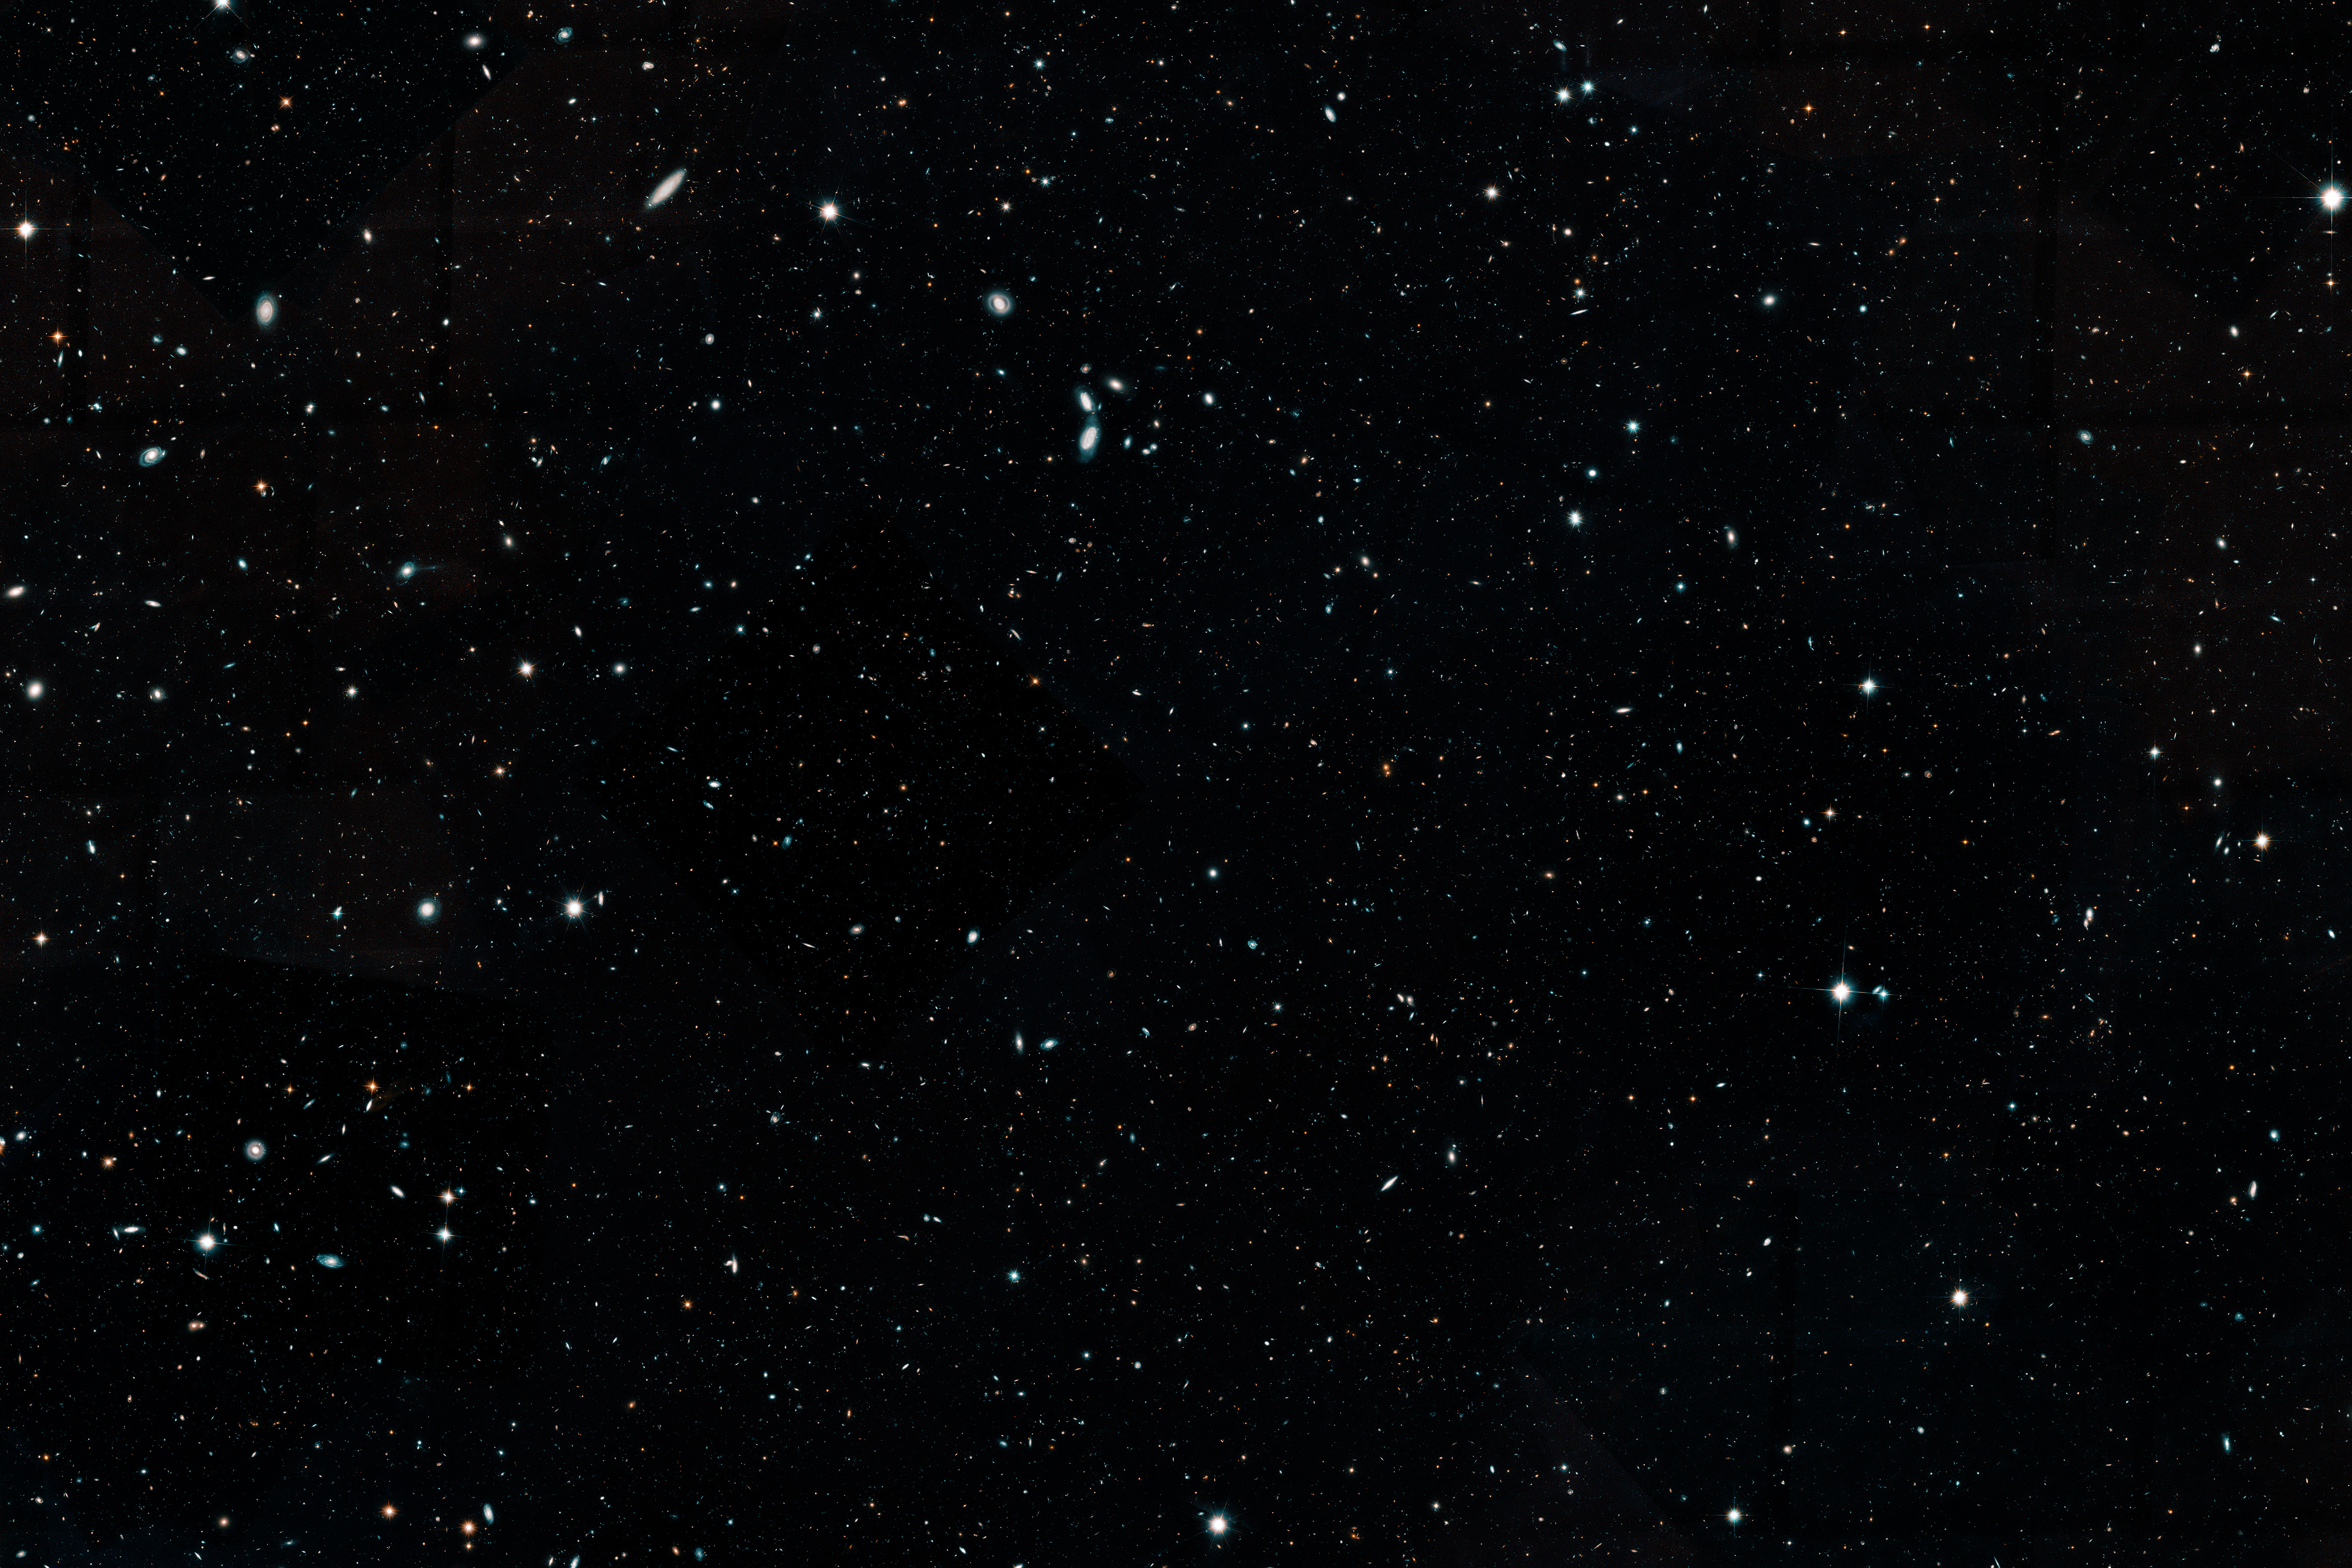 UConn astronomer Katherine Whitaker played a lead role in cataloging deep space images from 16 years' worth of Hubble Telescope observations. This composite image represents the largest, most comprehensive 'history book' of galaxies in the universe. The image is cropped here to fit. (Space Telescope Science Institute Image)